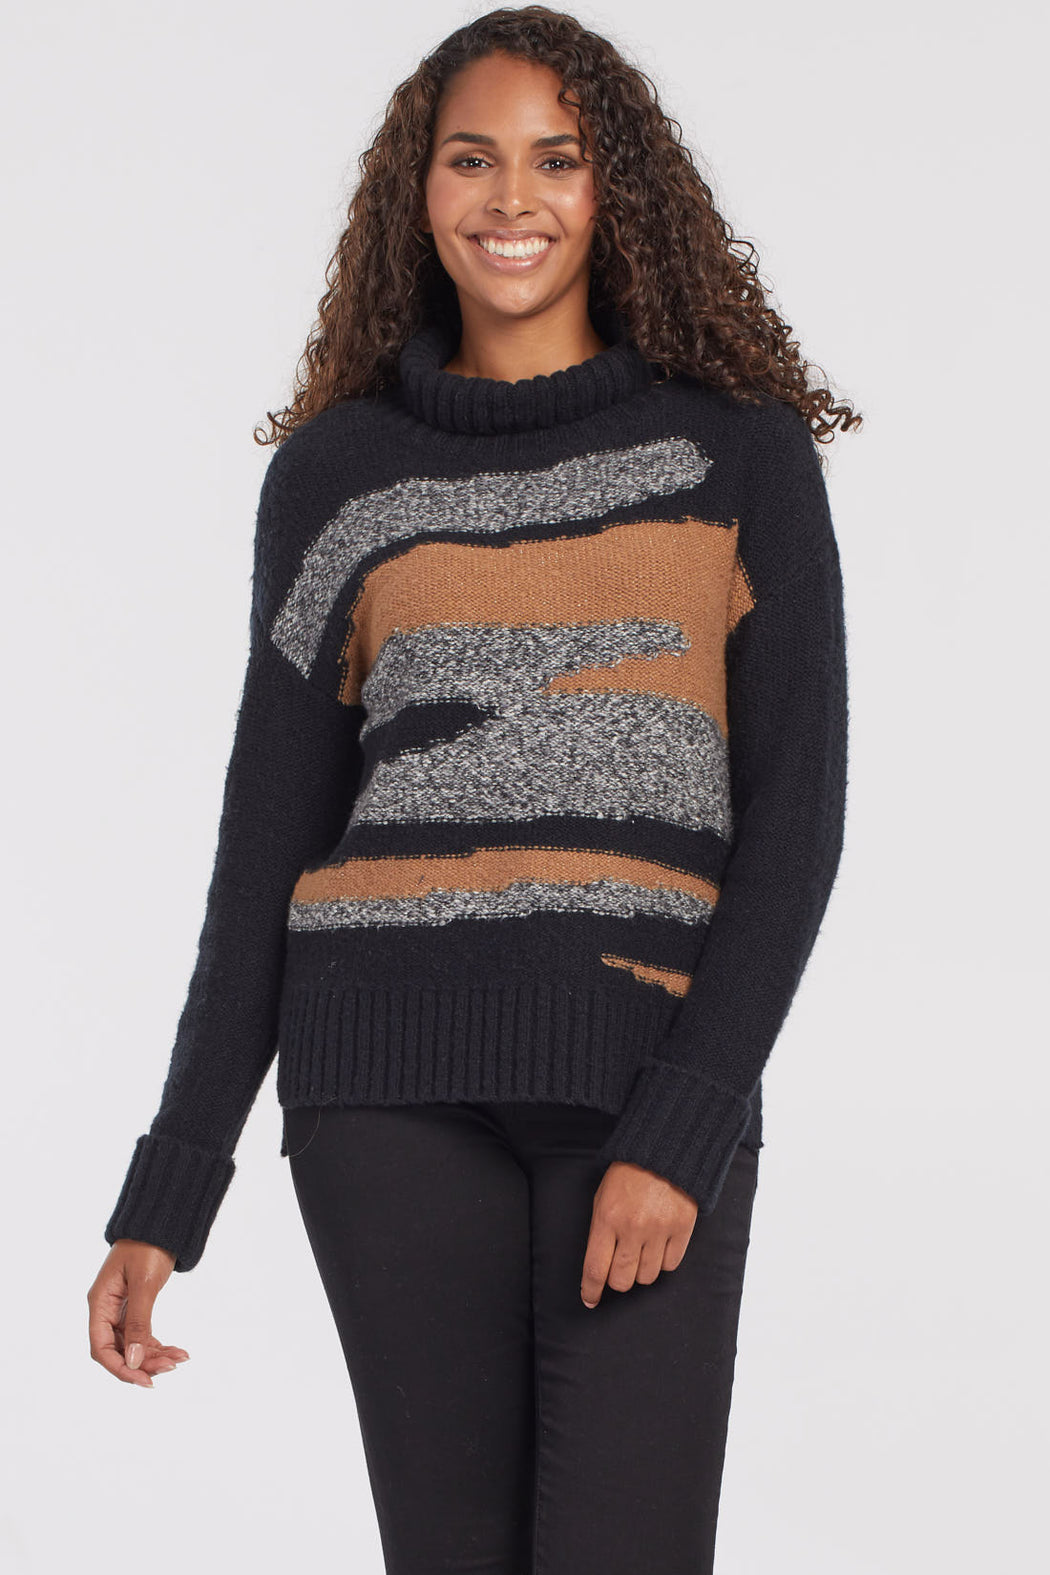 Each bold stroke on this sweater's torso features a season-right take on camo to create a lovingly crafted abstract design. A roomy fit and comfort-perfect roll neck and cuffs underscore this cozy cotton-blend sweater's relaxed fit.